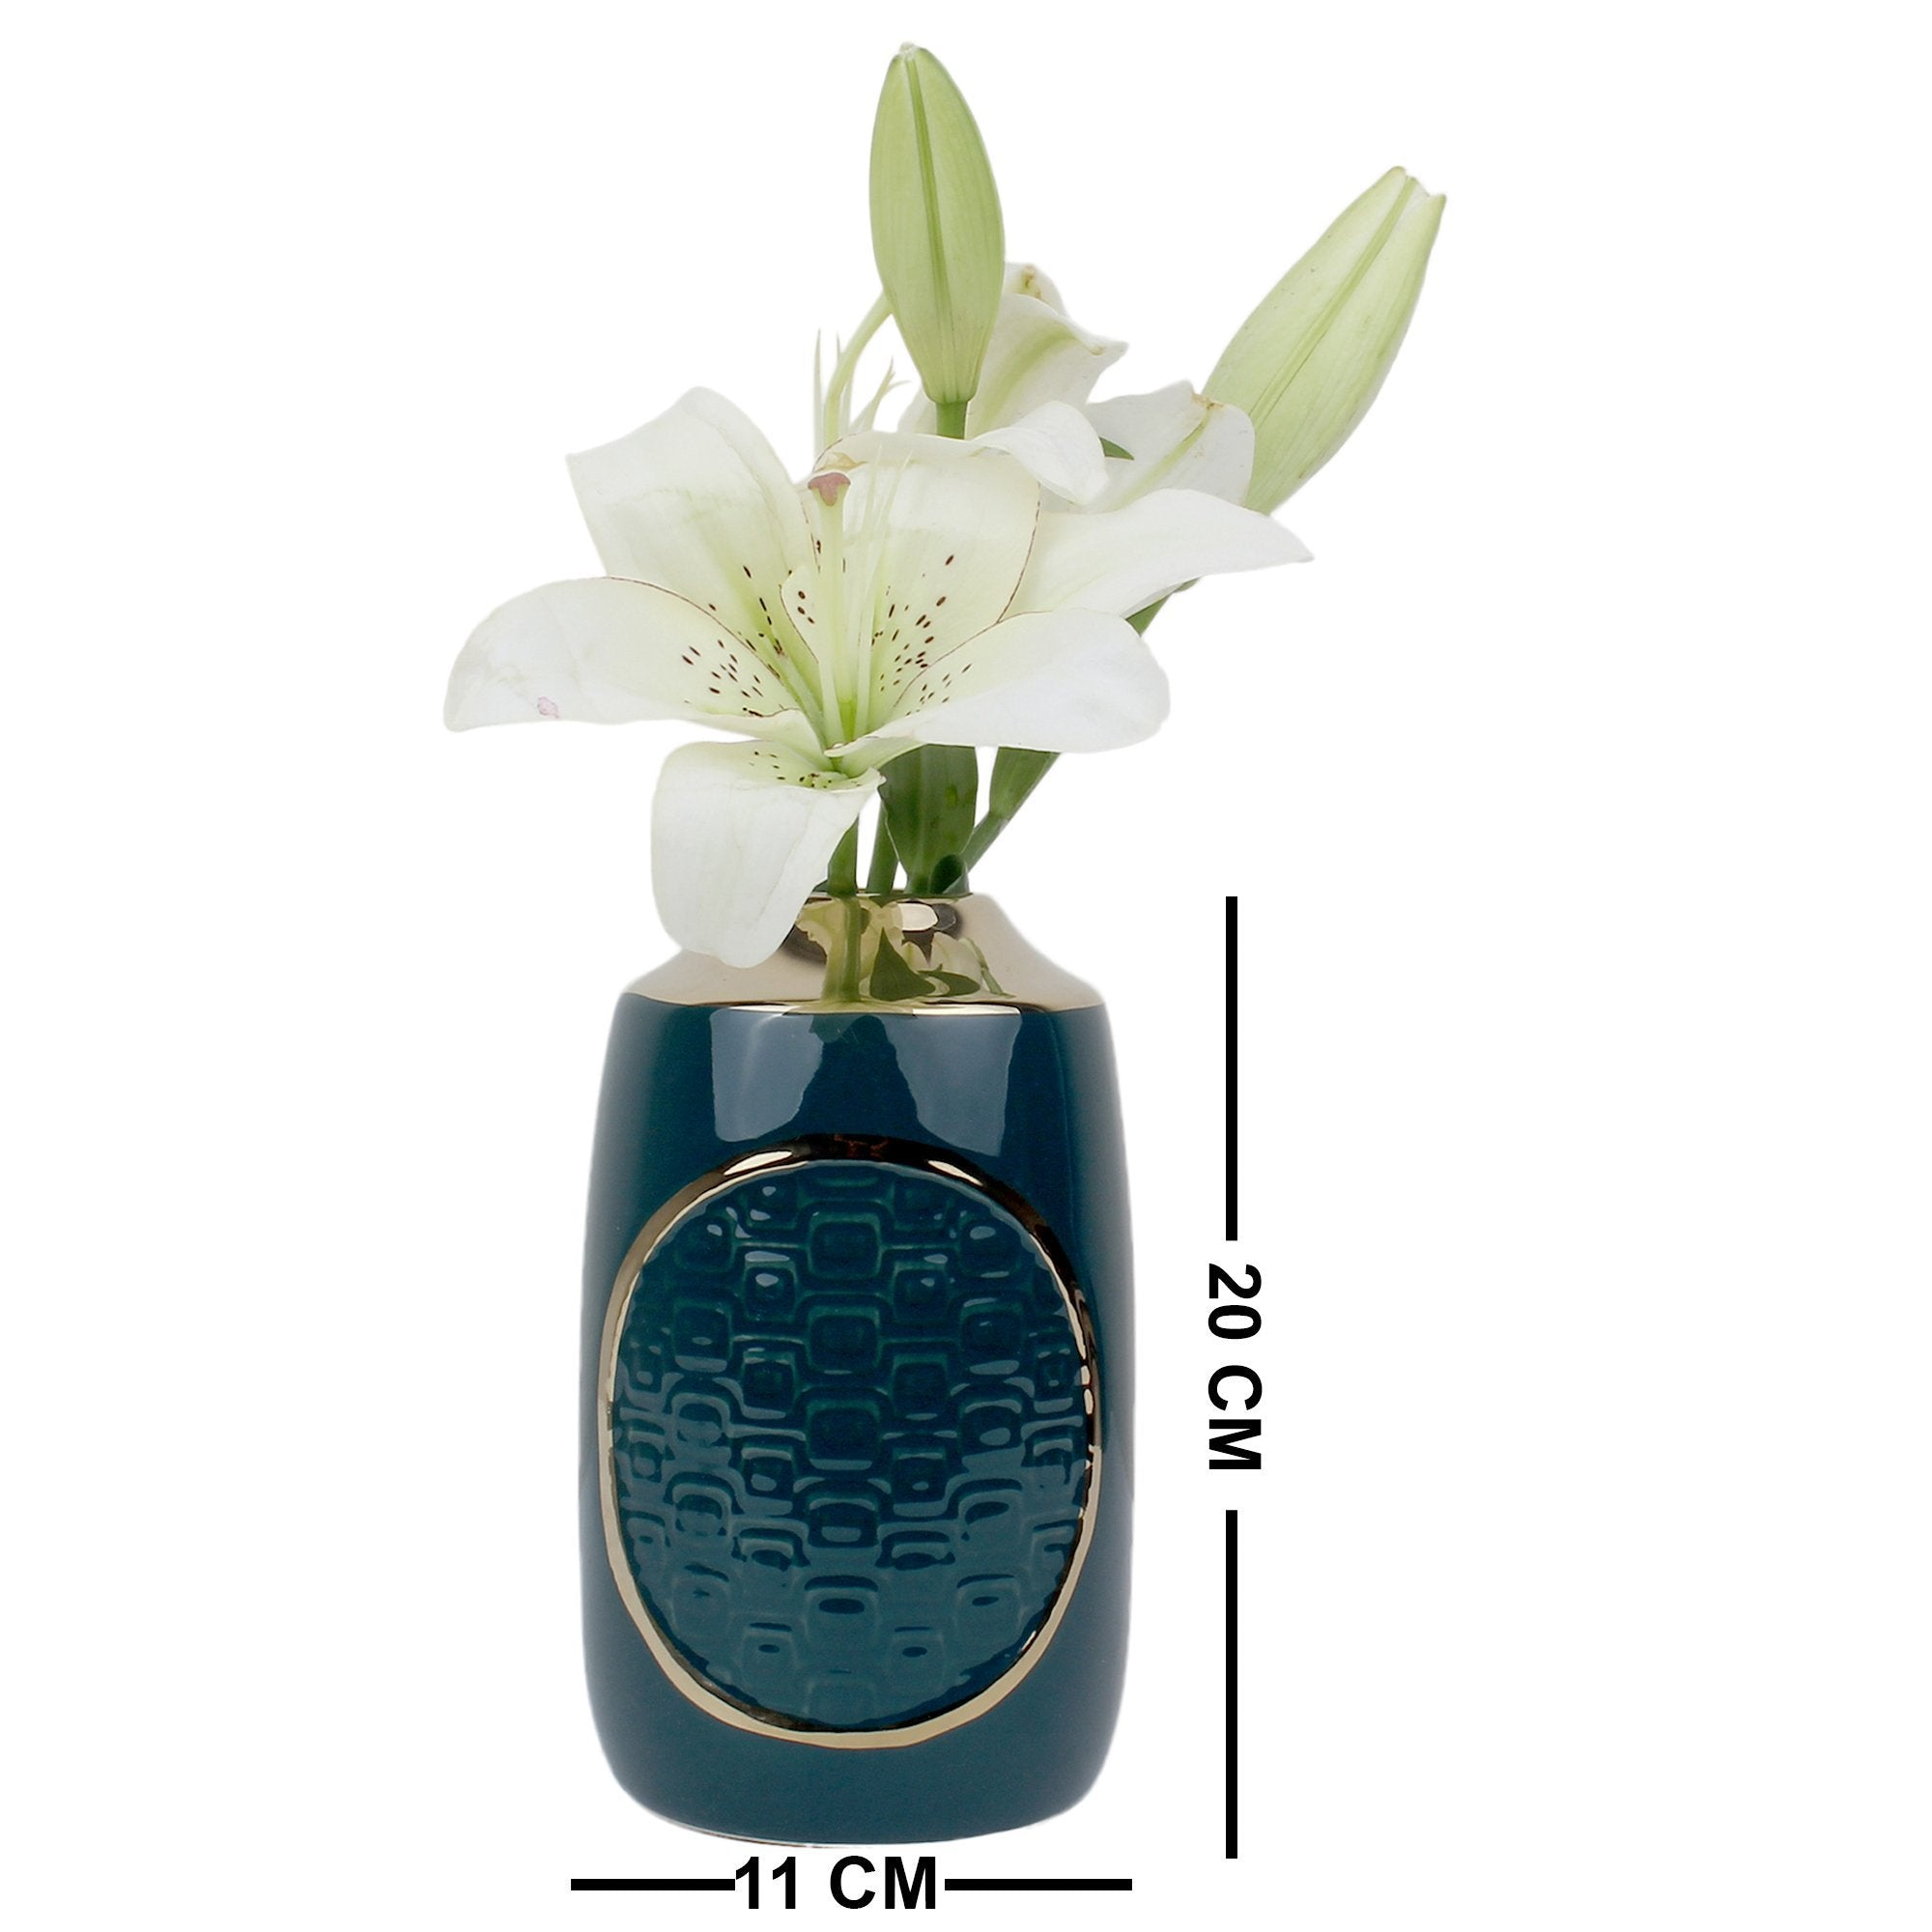 Flower Vase Green & Golden Closed Mouth